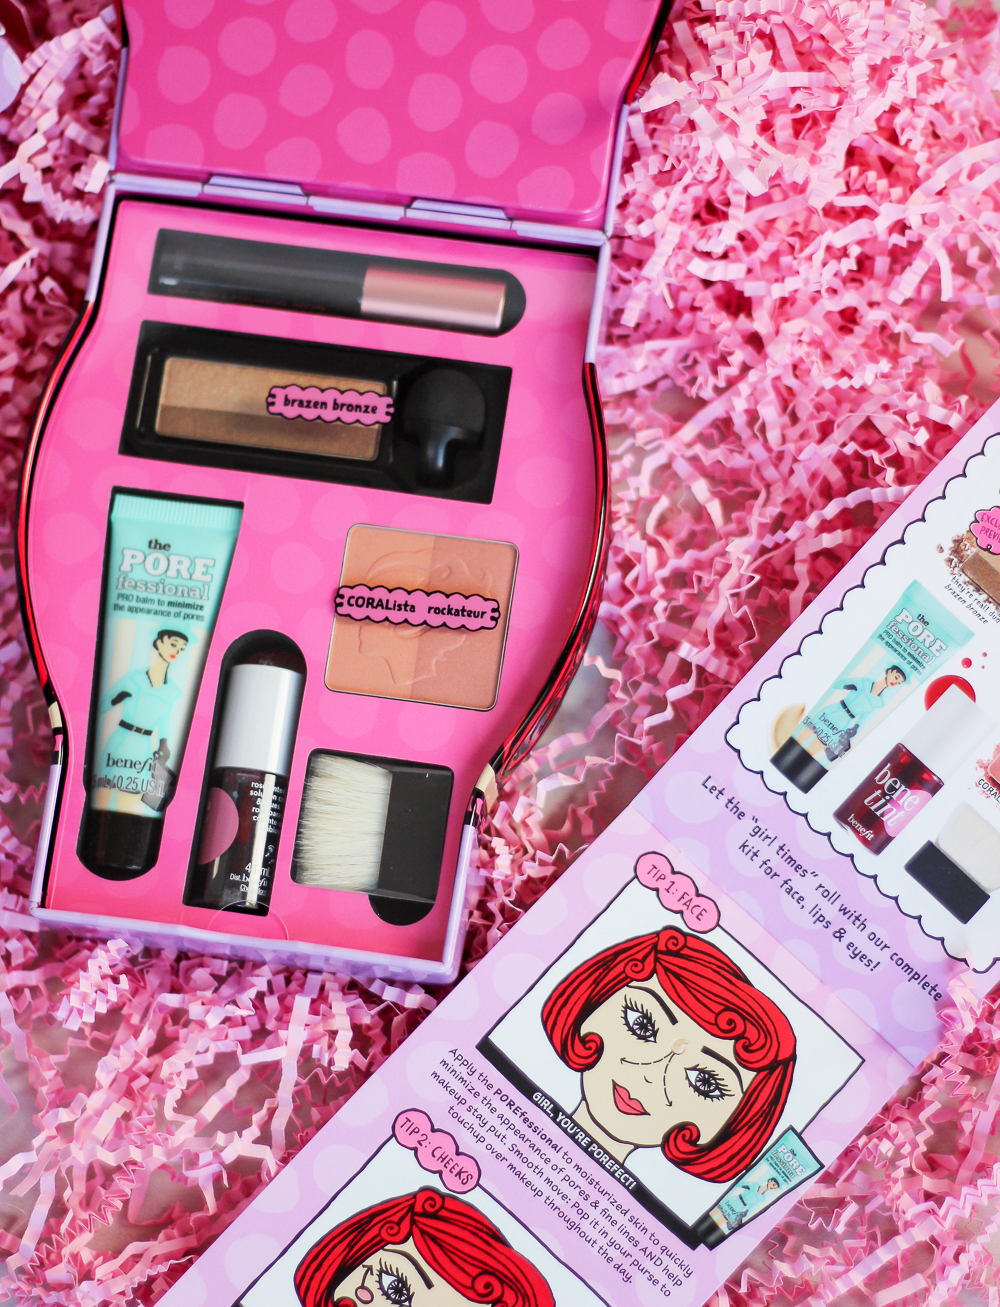 Benefit Cosmetics Holiday Gift Set for 2016 - Shoppers Drug Mart Exclusive, Girl-A-Rama full-face makeup palette